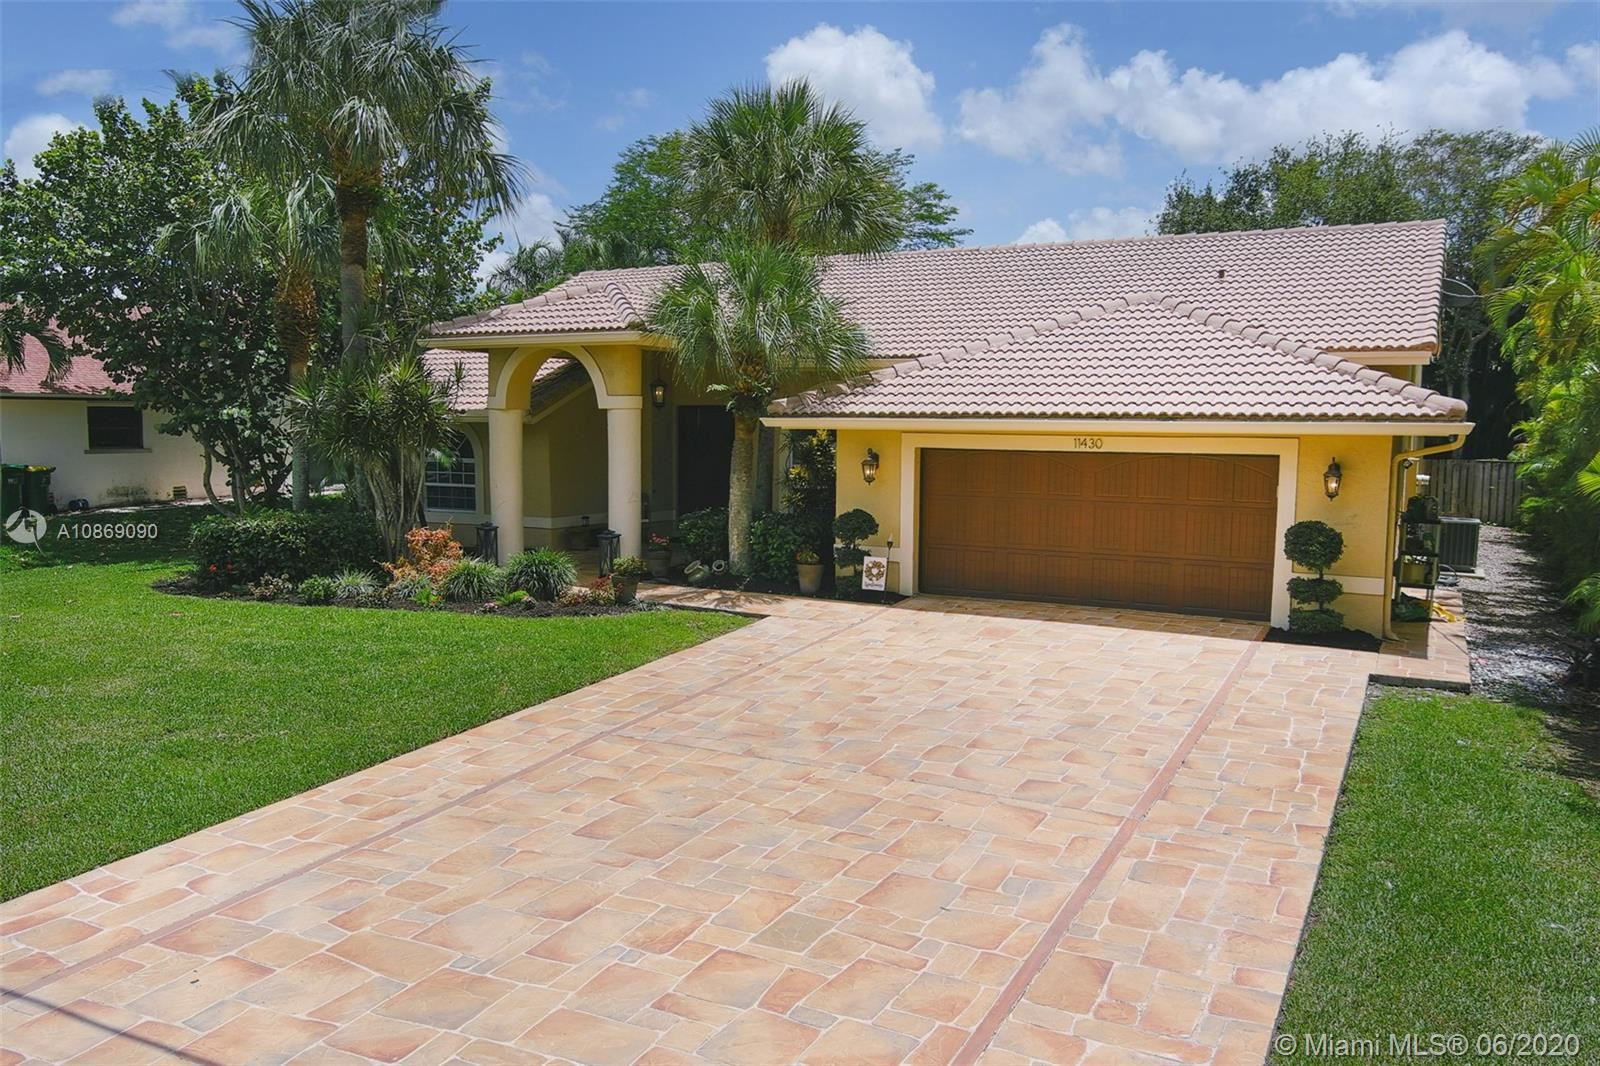 Photo of 11430 NW 23rd St, Plantation, FL 33323 (MLS # A10869090)